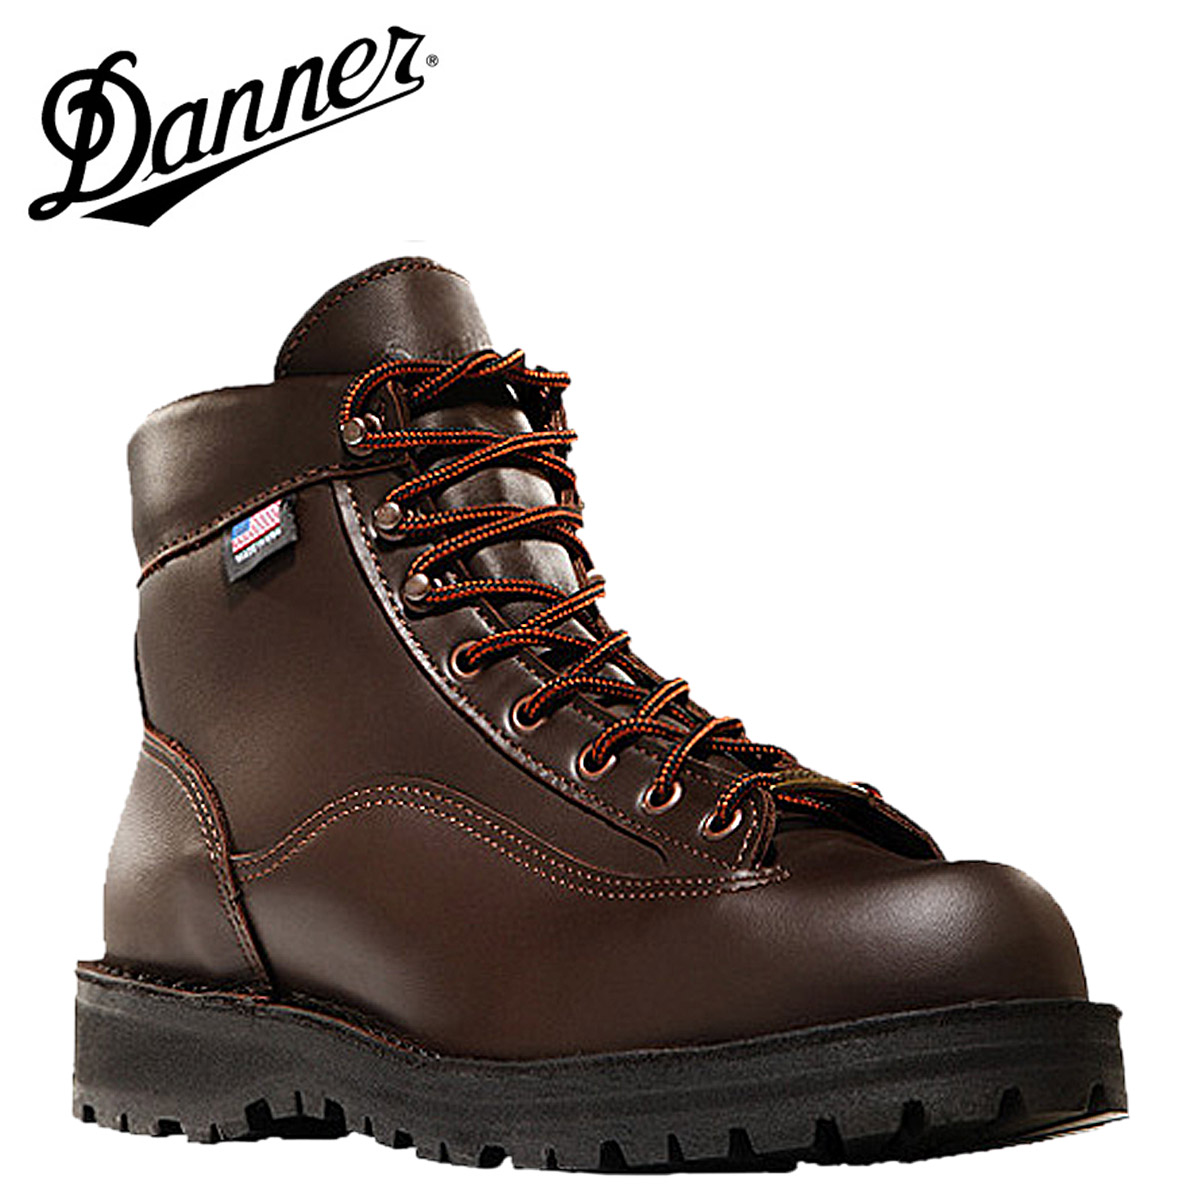 SneaK Online Shop | Rakuten Global Market: Danner Danner Explorer ...